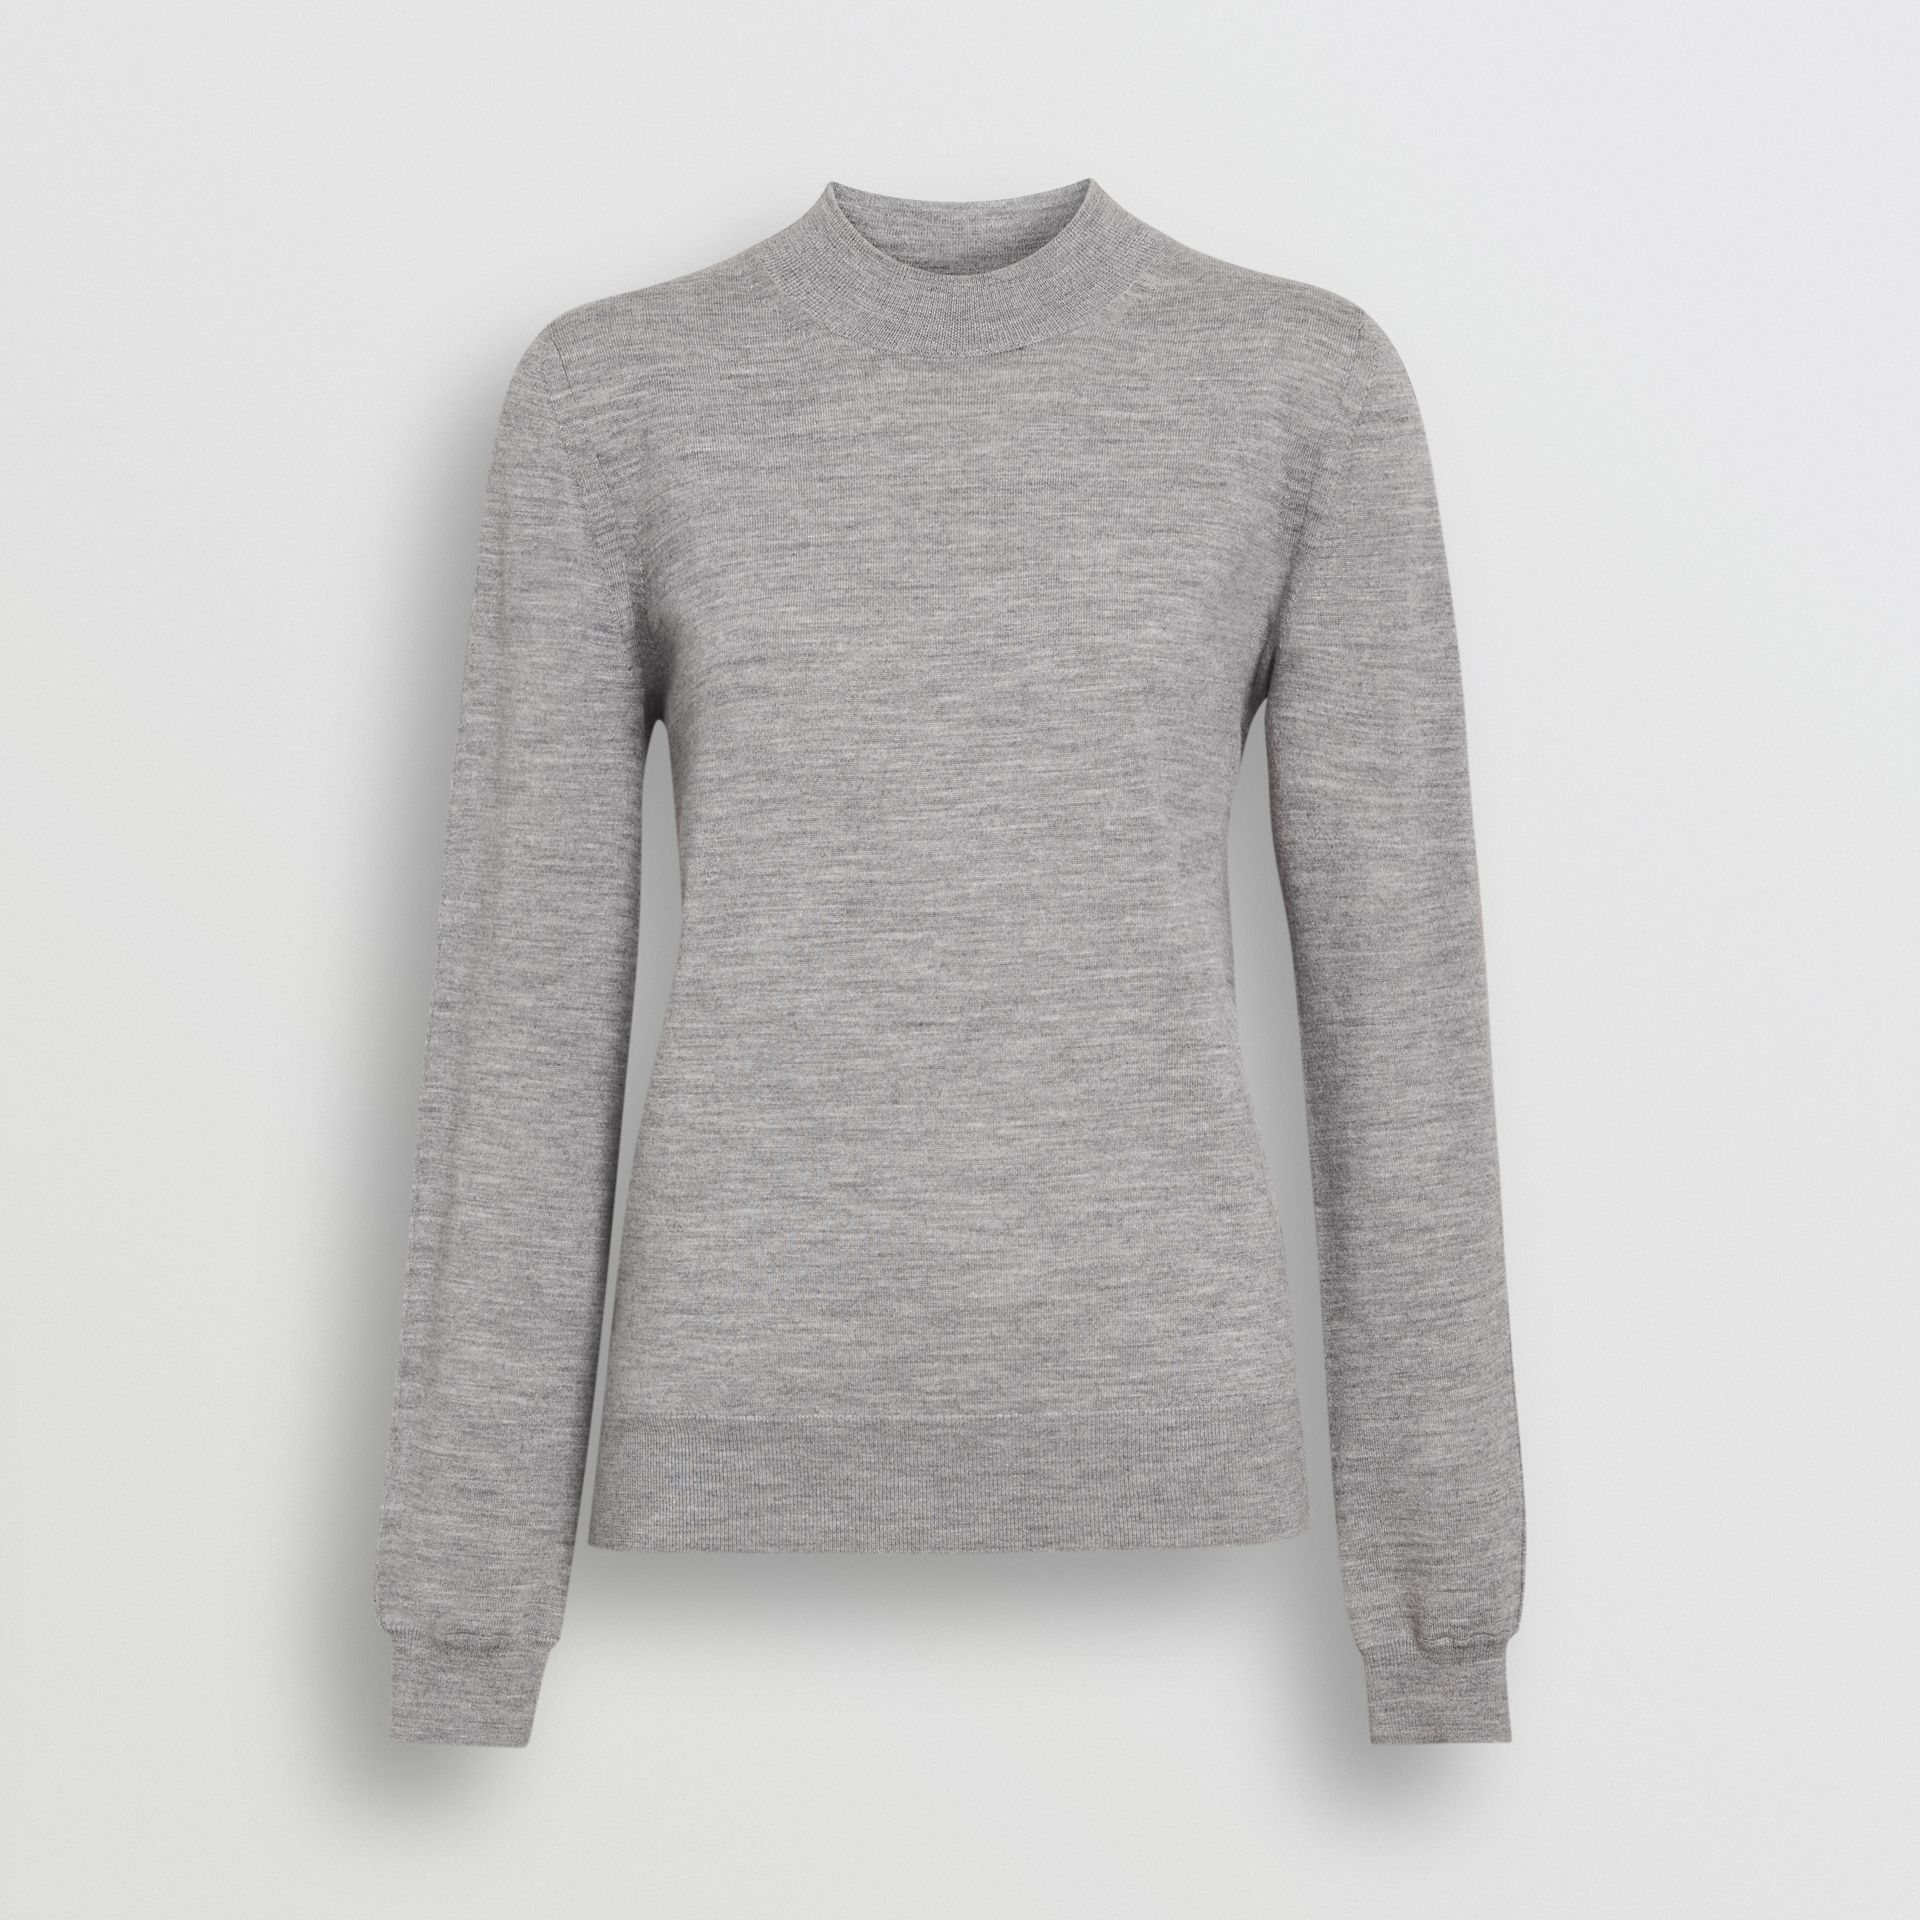 Merino Wool Crew Neck Sweater in Grey Melange - Women | Burberry United Kingdom - gallery image 3